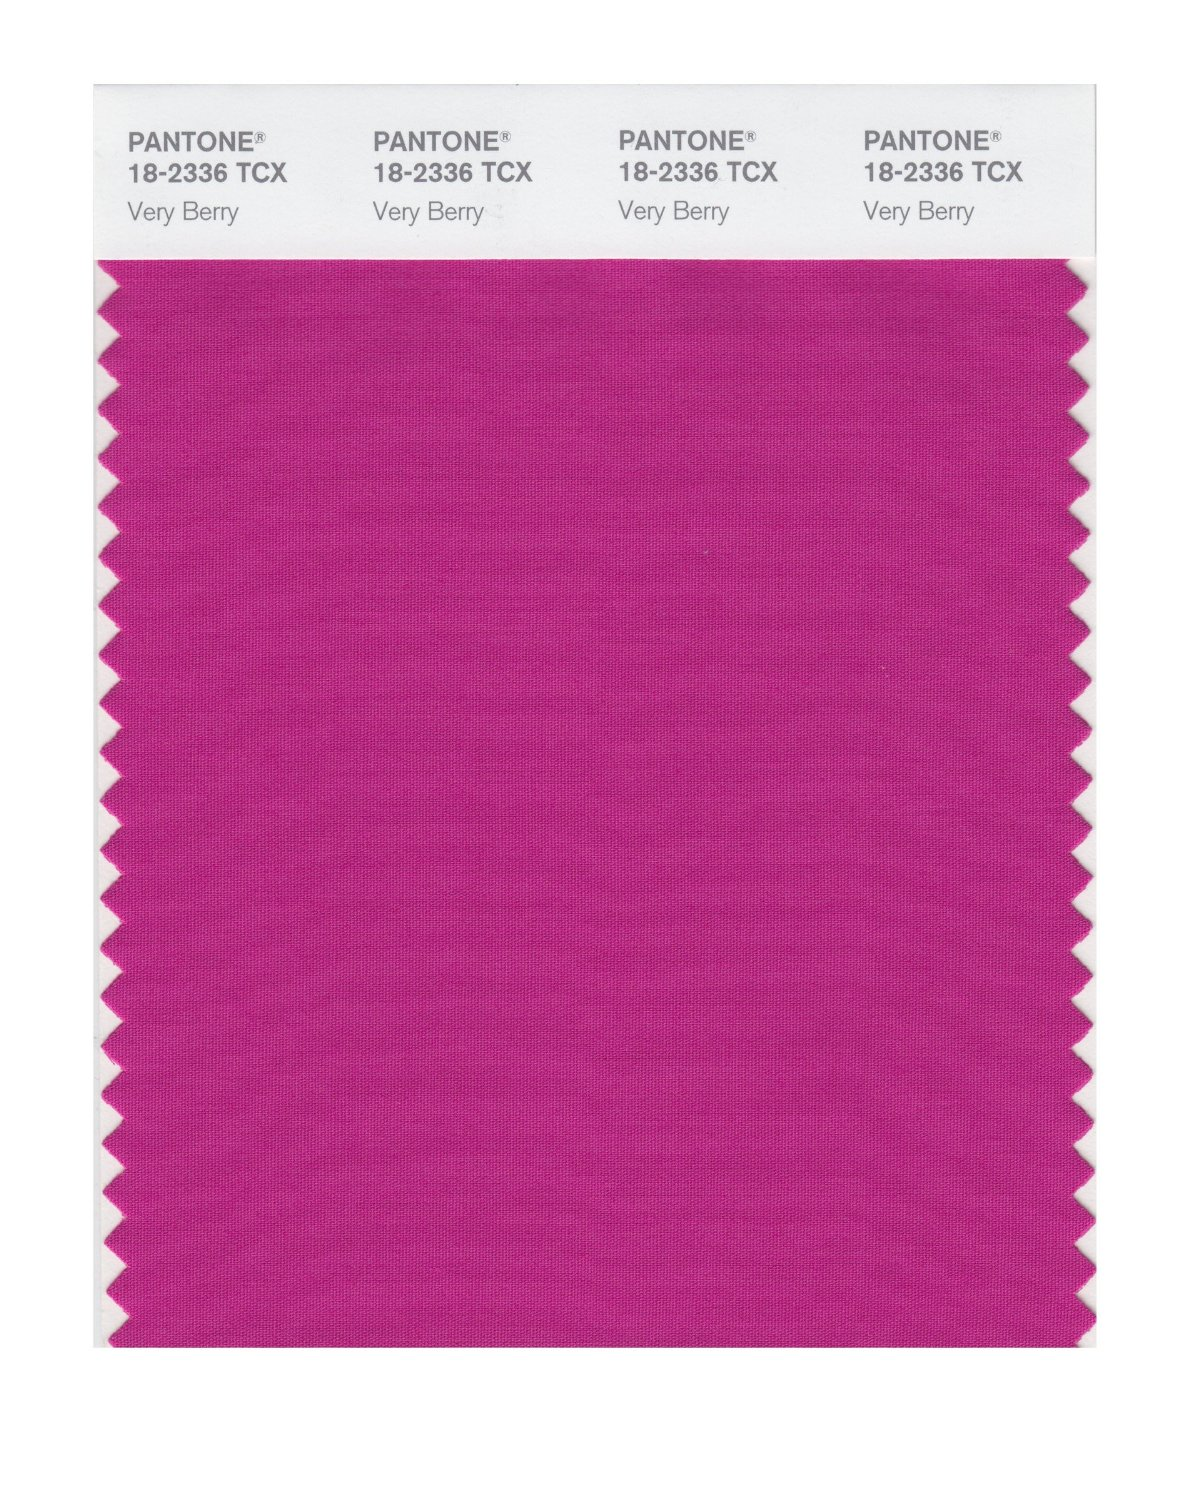 Pantone Smart Swatch 18-2336 Very Berry